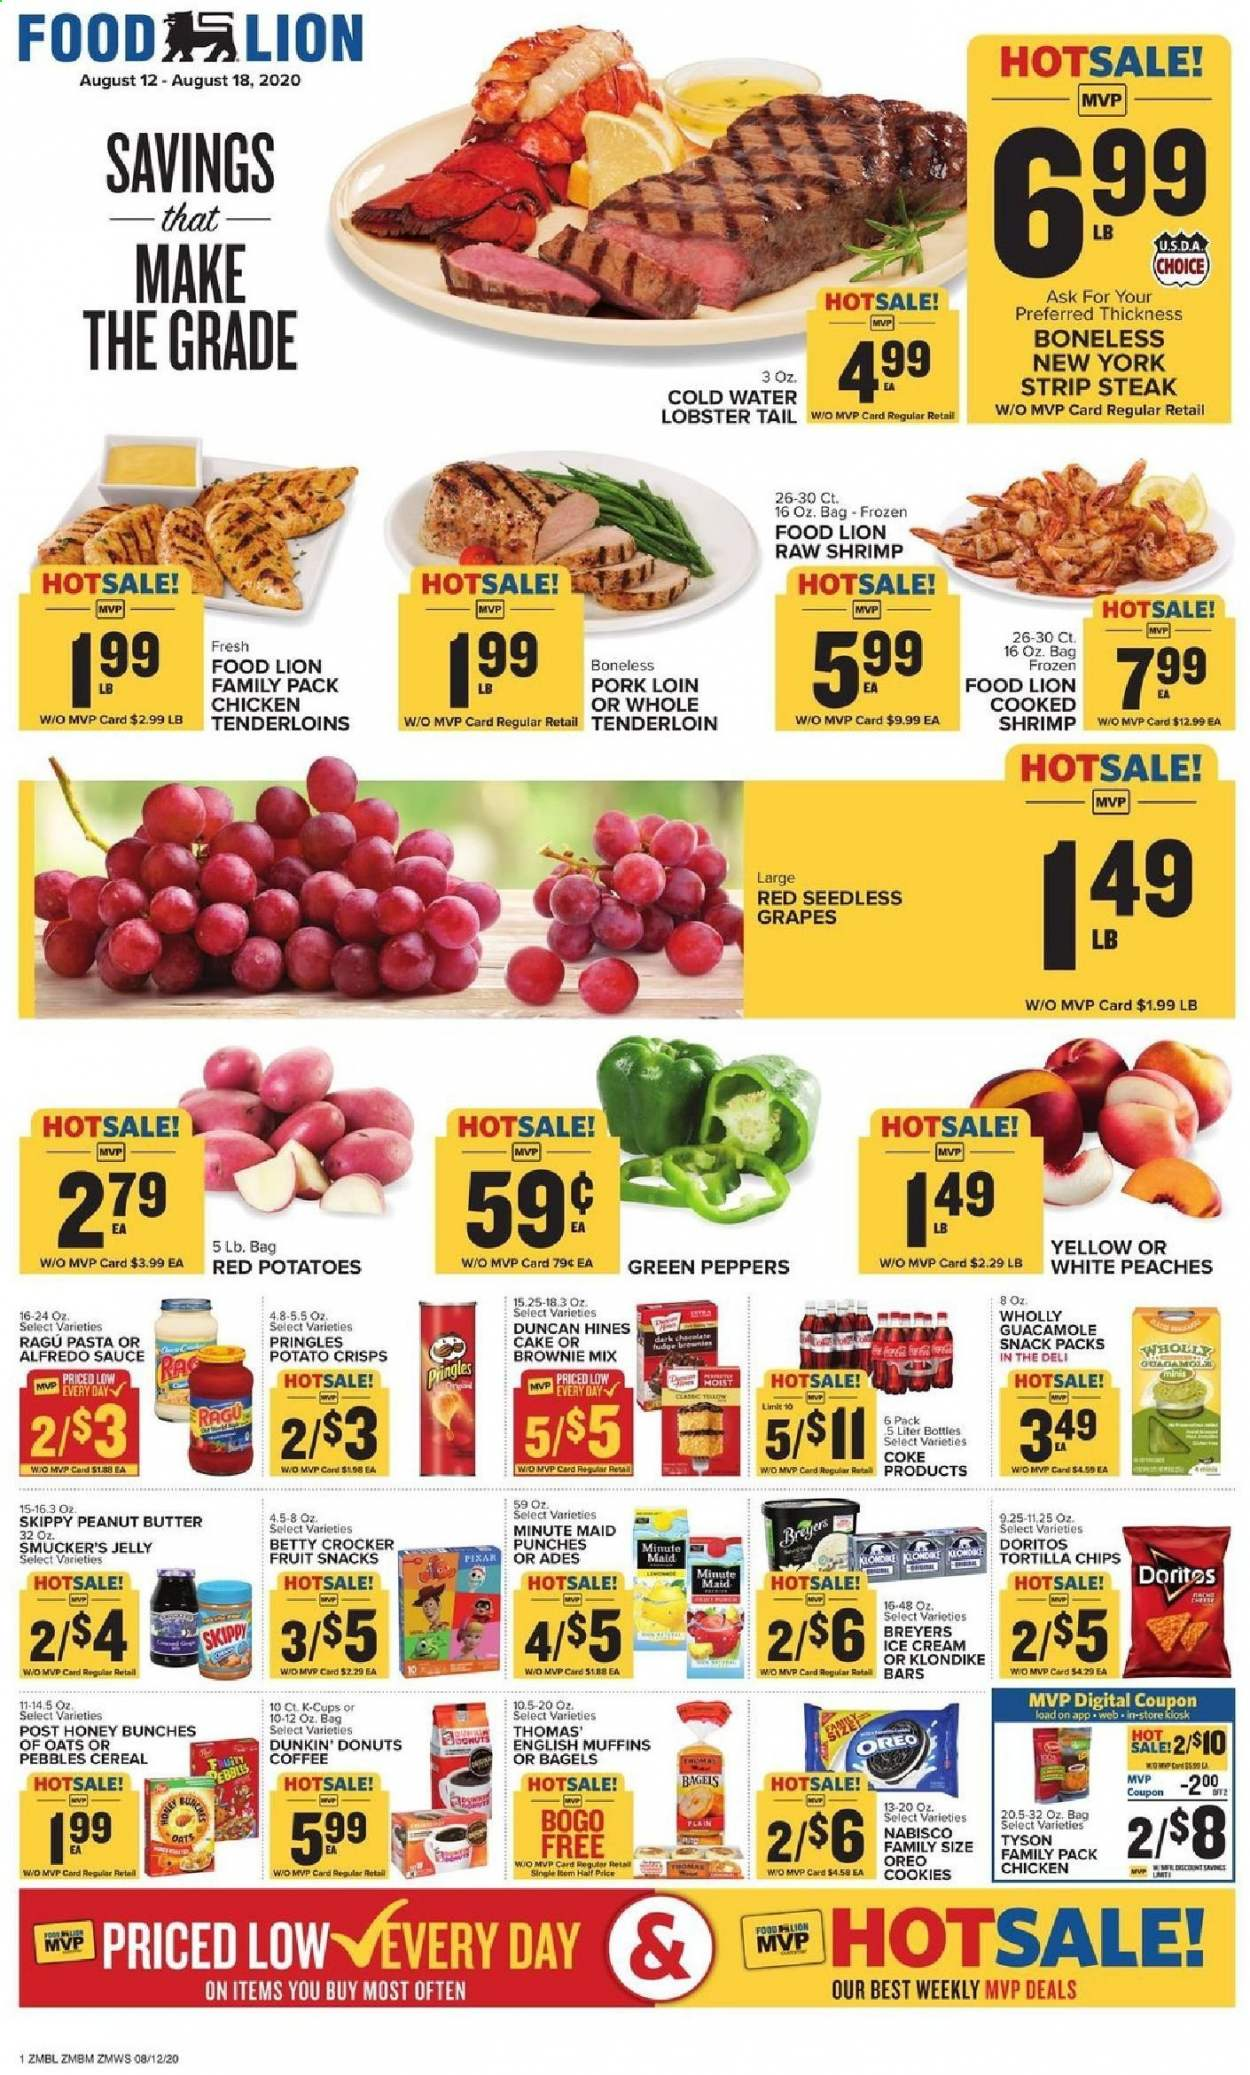 Food Lion Flyer - 08.12.2020 - 08.18.2020 - Sales products - alfredo sauce, bagels, brownie mix, cereals, Coca-Cola, coffee, cookies, Doritos, english muffins, fudge, grapes, lobster, muffins, seedless grapes, tortilla chips, honey, ice cream, pork loin, pork meat, potato crisps, potatoes, Pringles, chicken, peanut butter, oats, Oreo, chips, steak, cake, snack, pasta, sauce, Fruit, guacamole, jelly, peppers, Bunches, brownie, lobster tail, shrimps, donut, peache. Page 1.